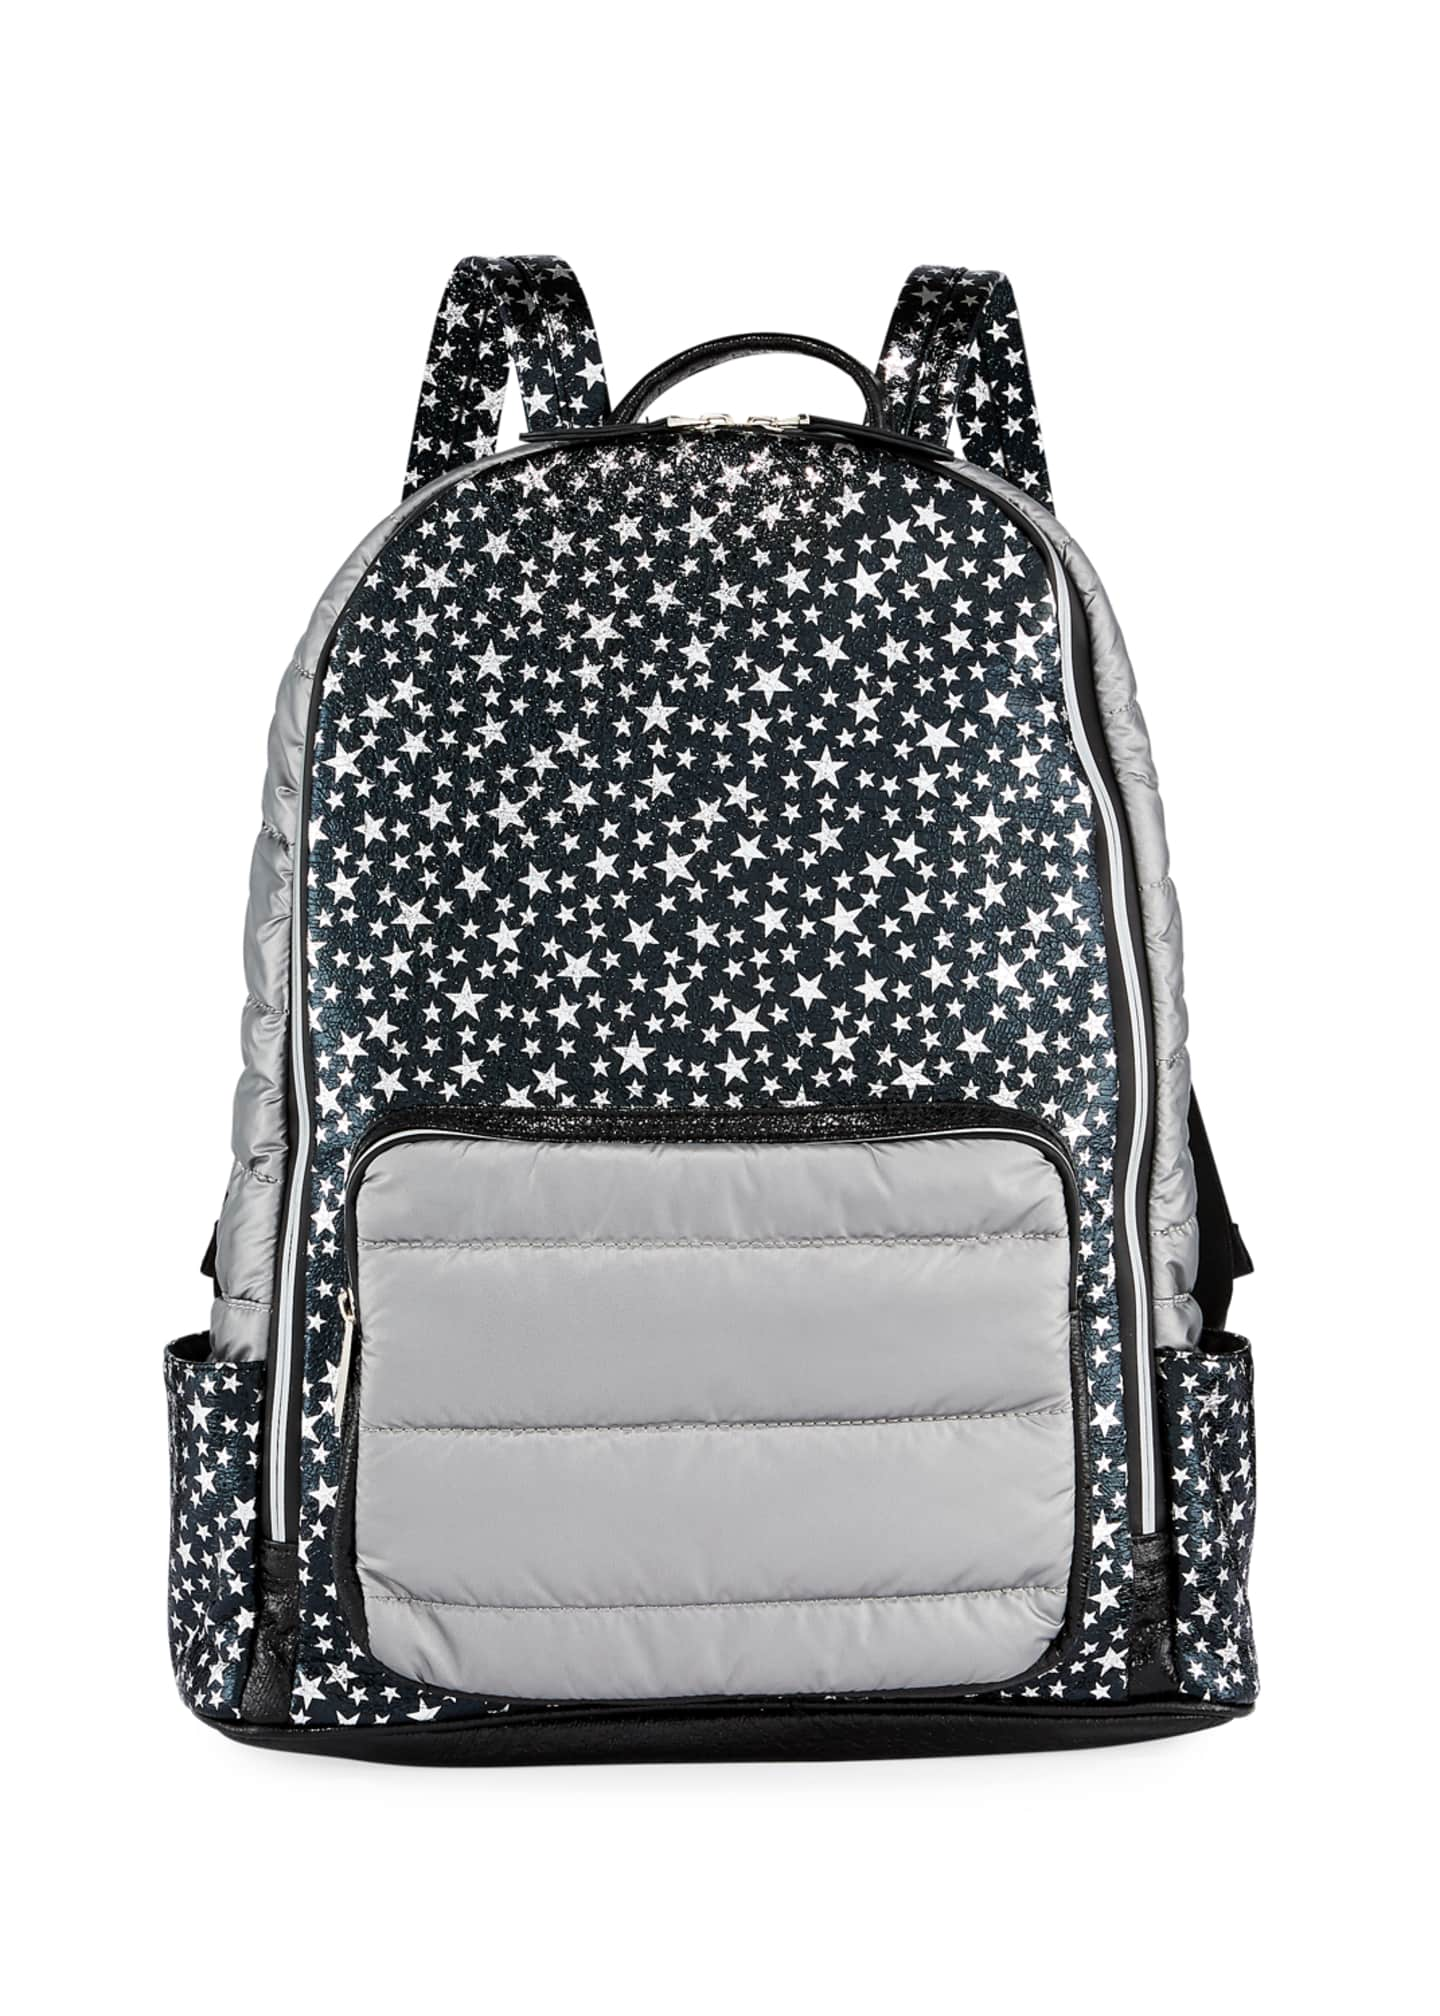 Bari Lynn Girls' Star-Print Backpack